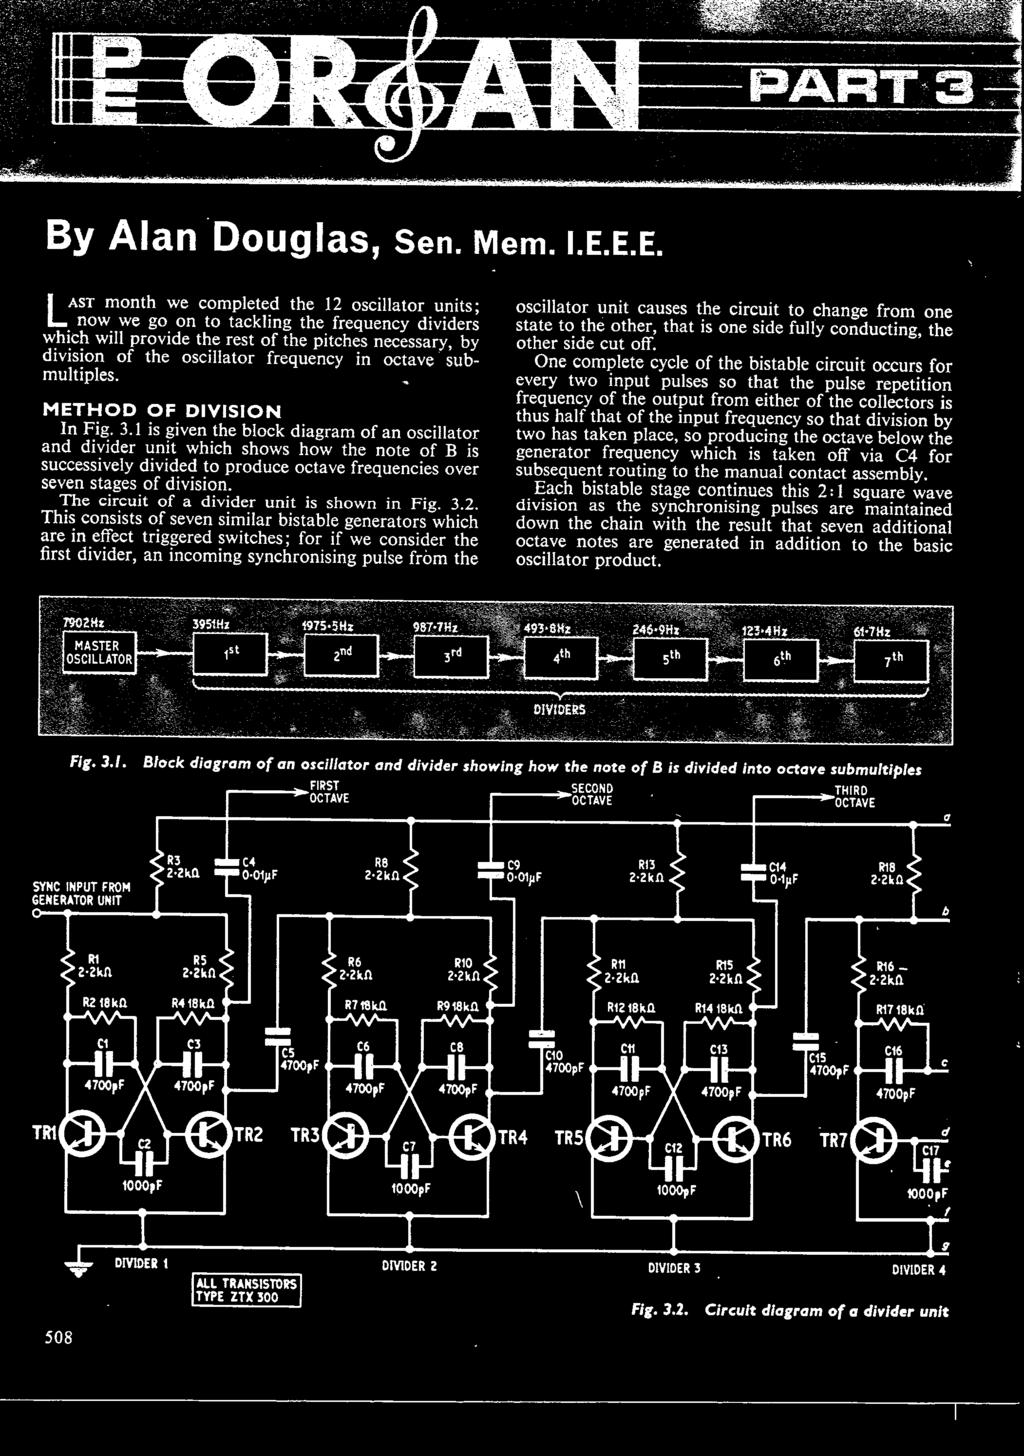 Practical Electroimip Three Shillings July 19b0 Vdurs To Commnnd 4w Bridge Amplifier Using Lm388 Circuit Diagram Hie Of A Divider Unit Is Shown In Fig 32